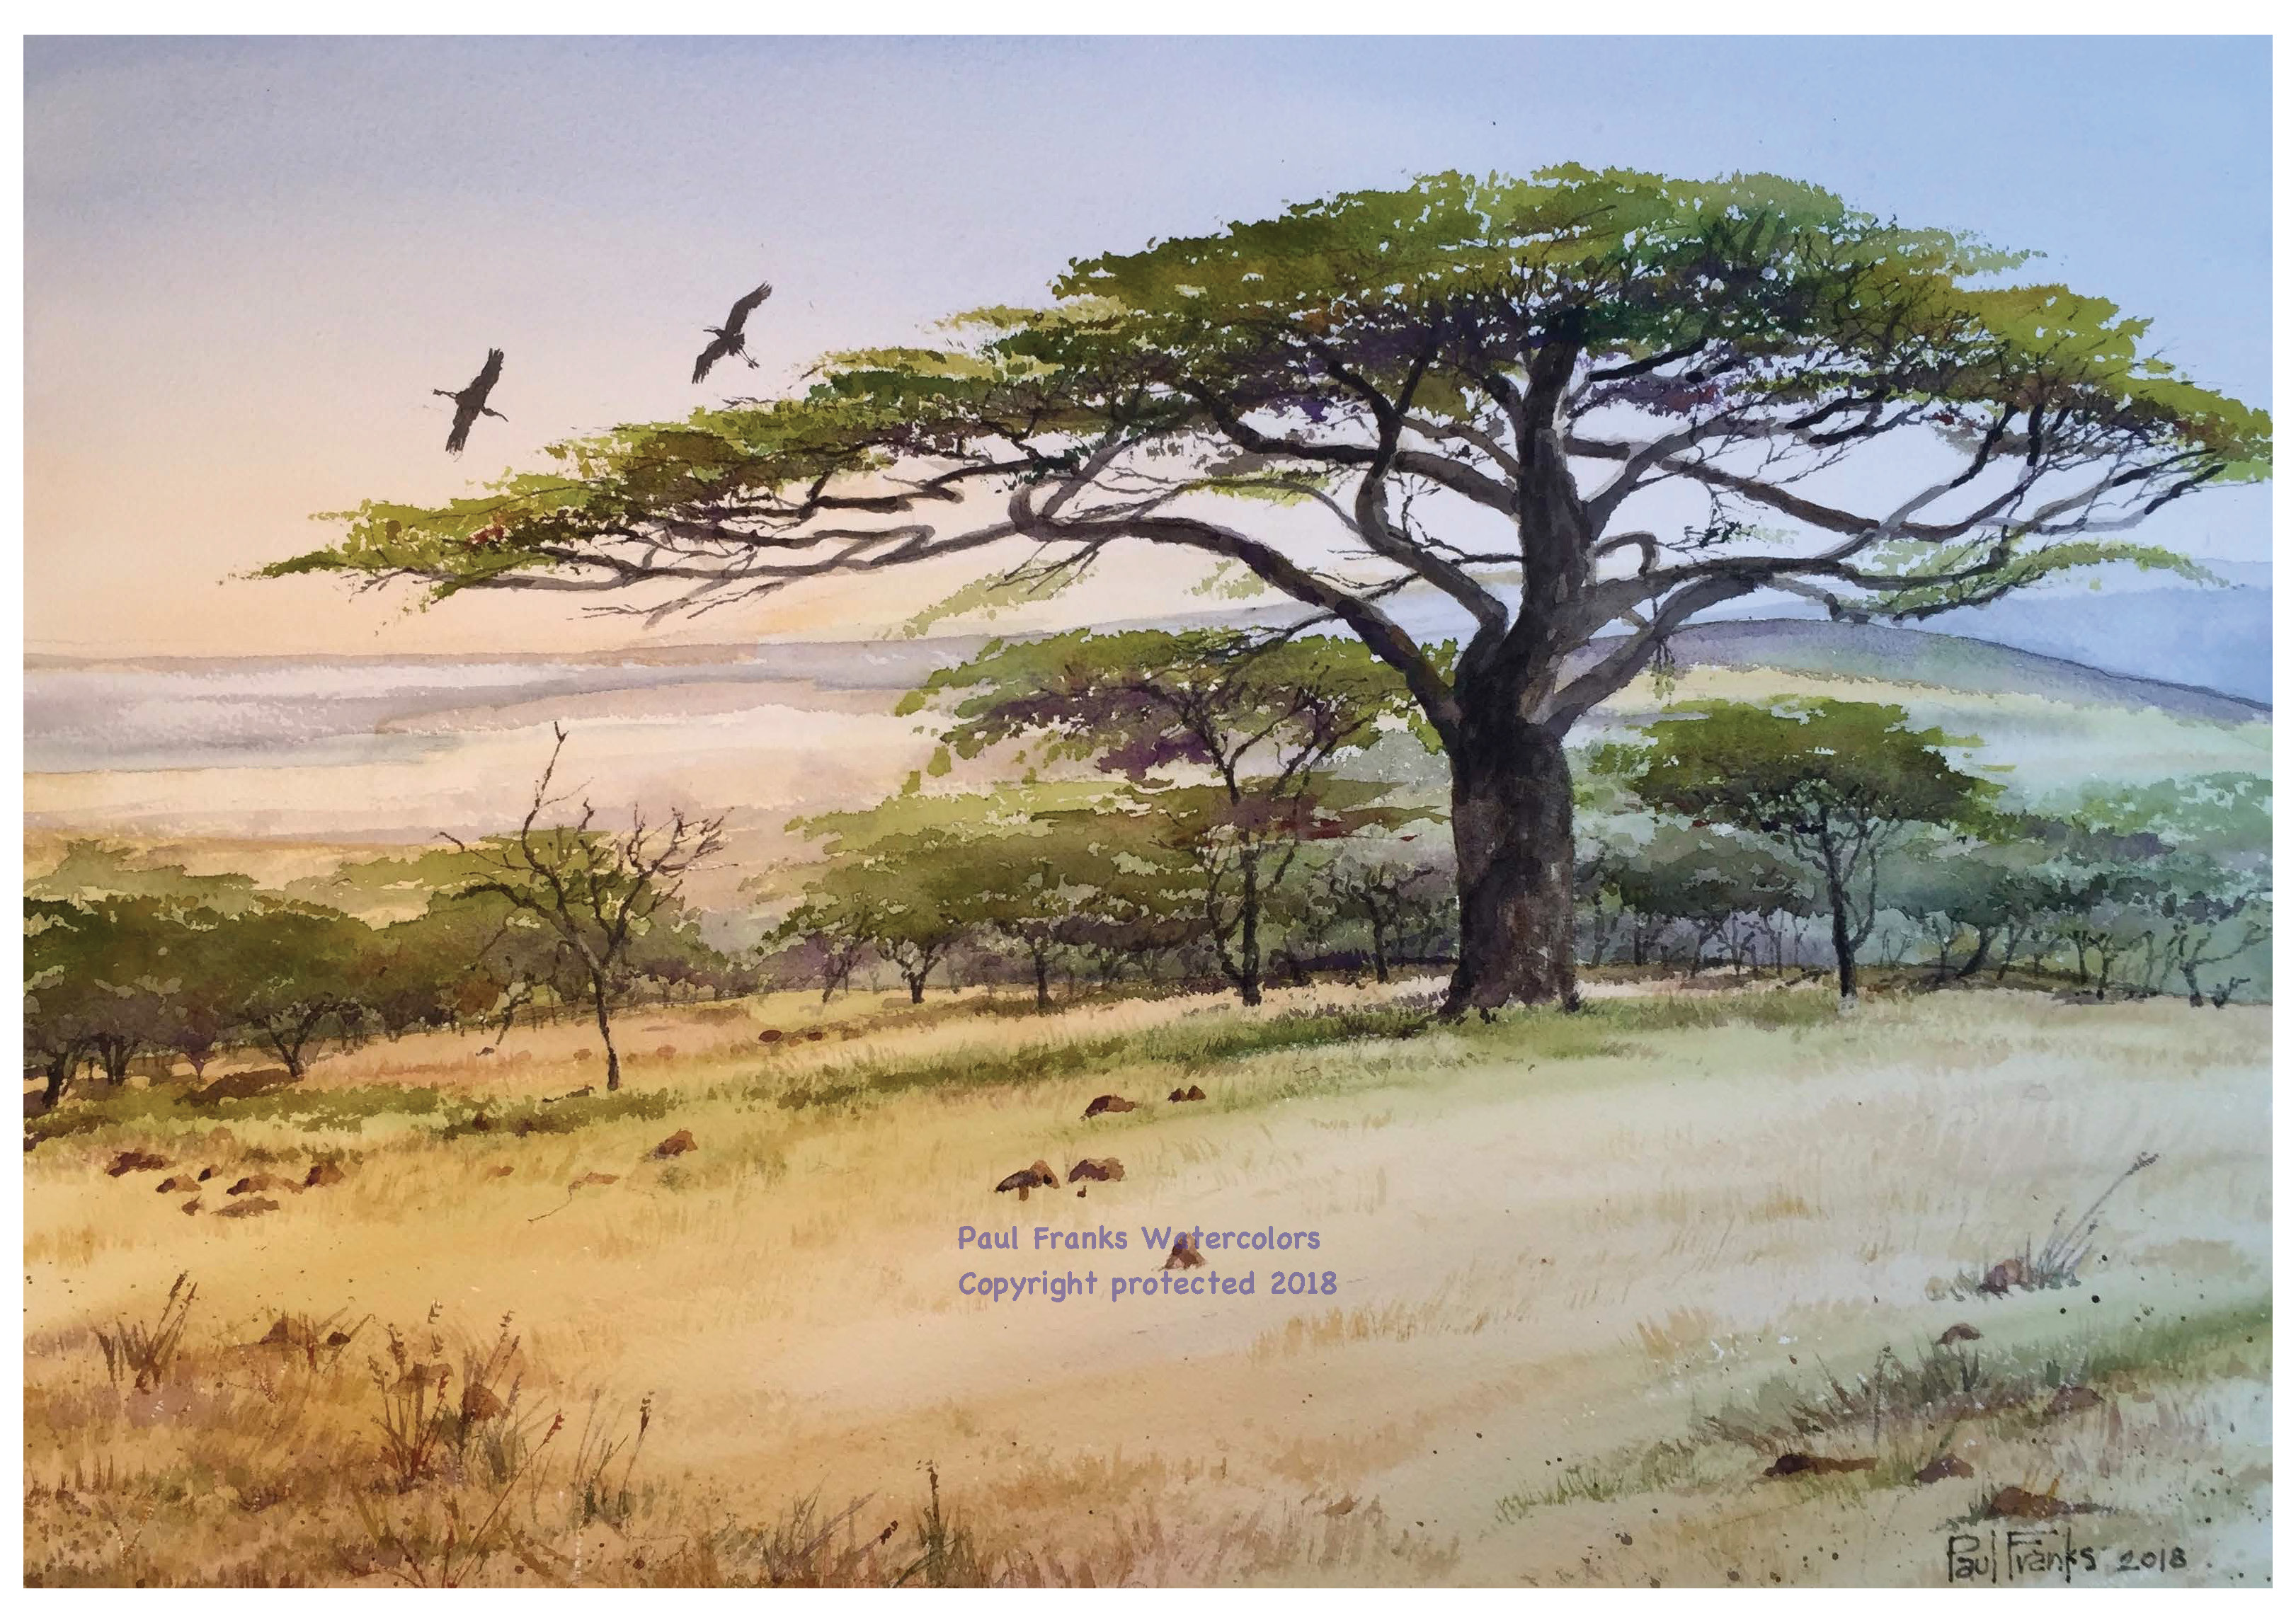 Watercolor Acacia on the Maasai Mara Plain